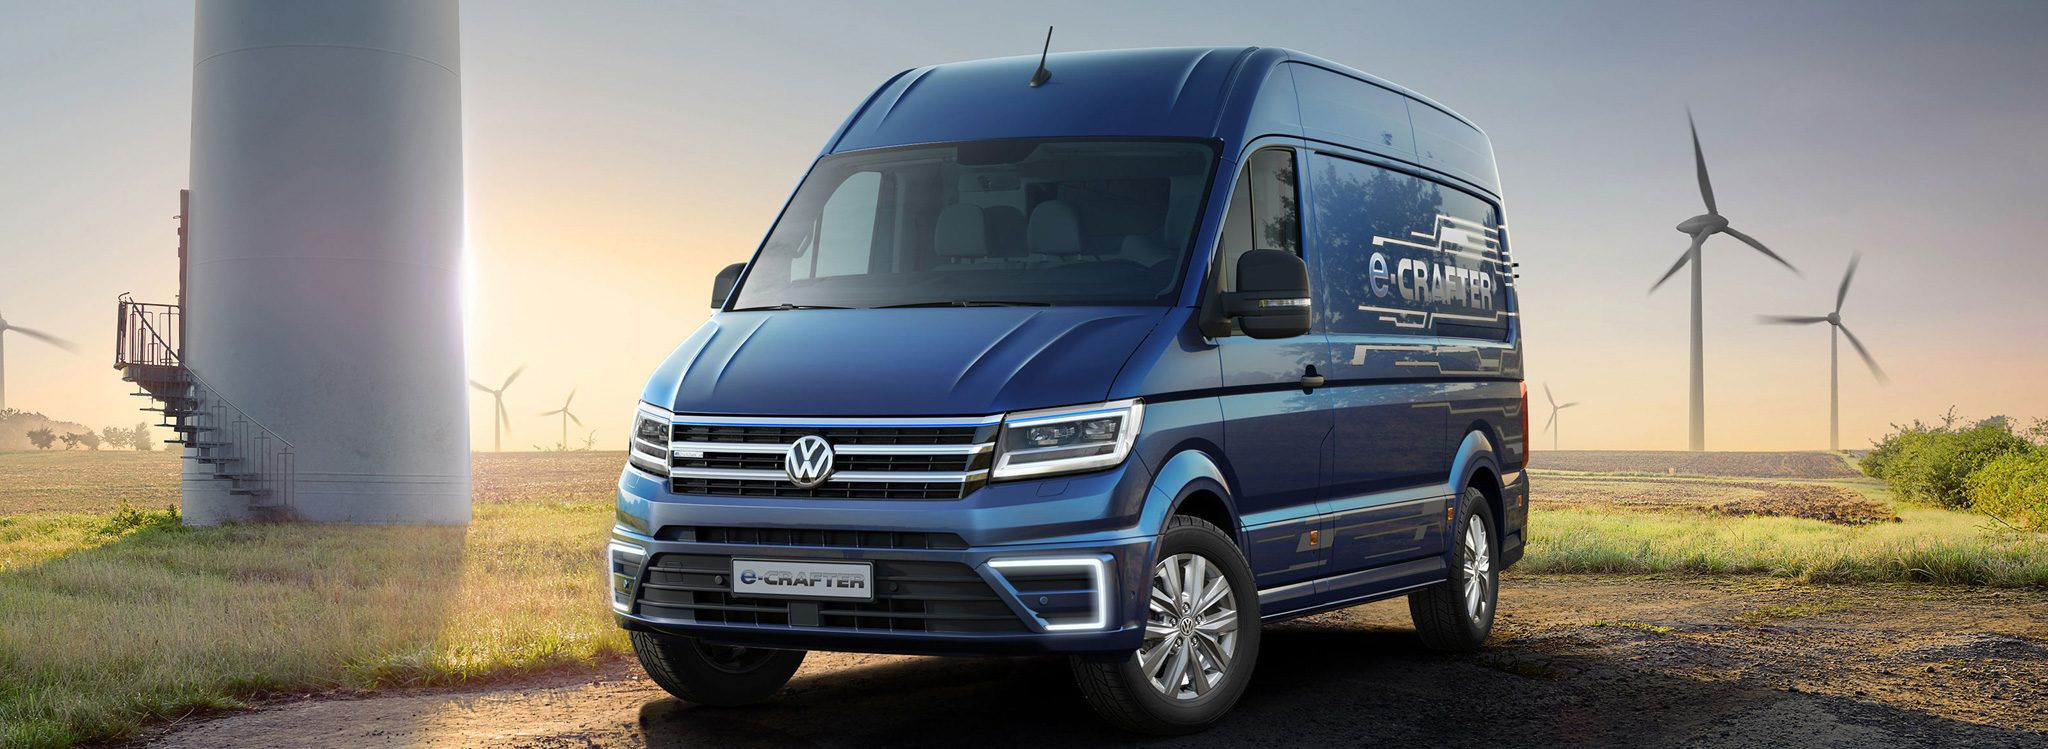 Volkswagen e-Crafter front shot